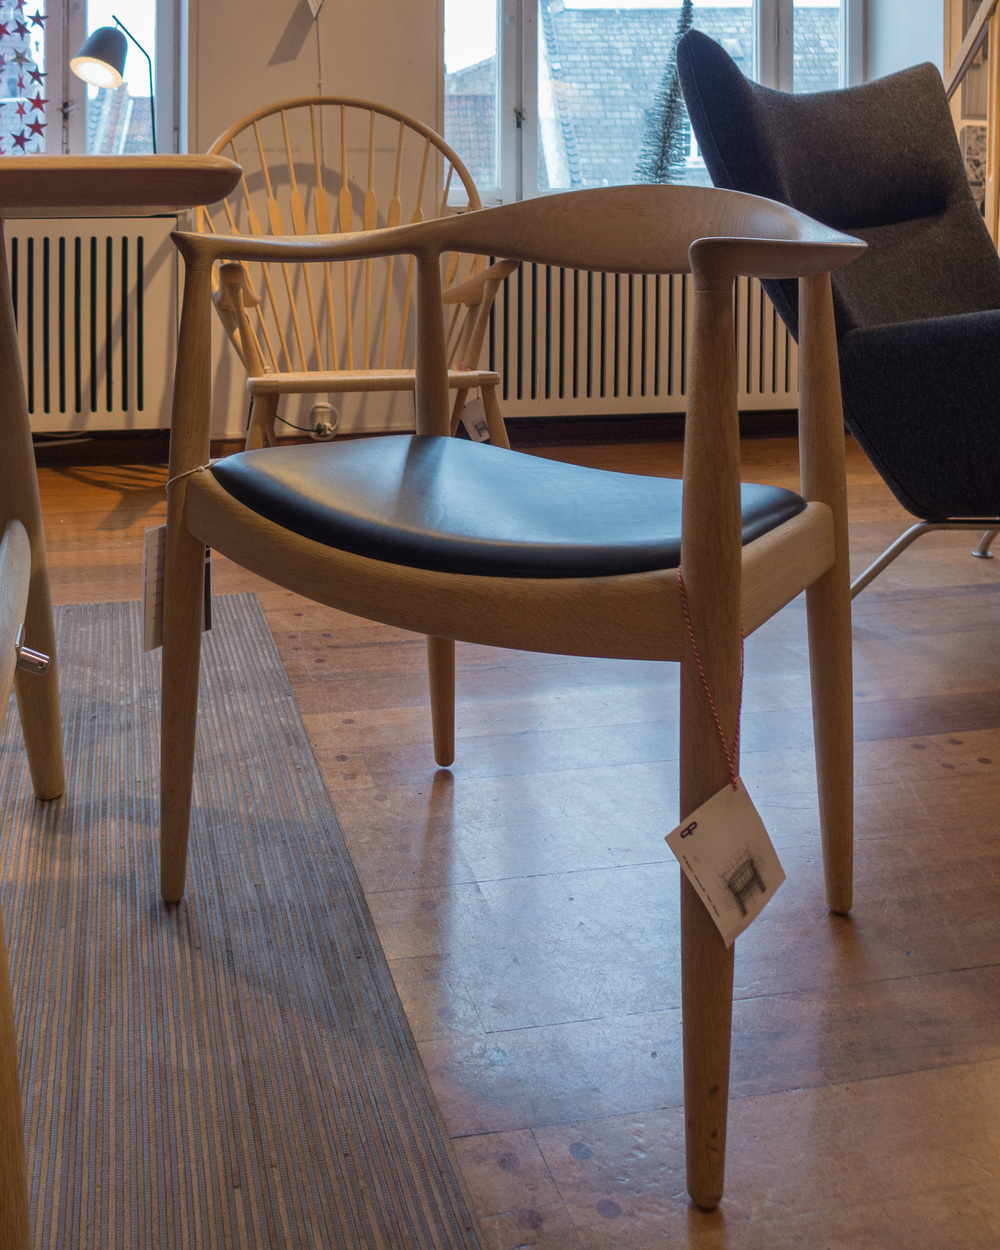 The Chair By Hans Wegner Is Still In Production By The Danish Company PP  Møbler ... Here Photographed At Illums Bolighus ... The Furniture And  Design Store ...